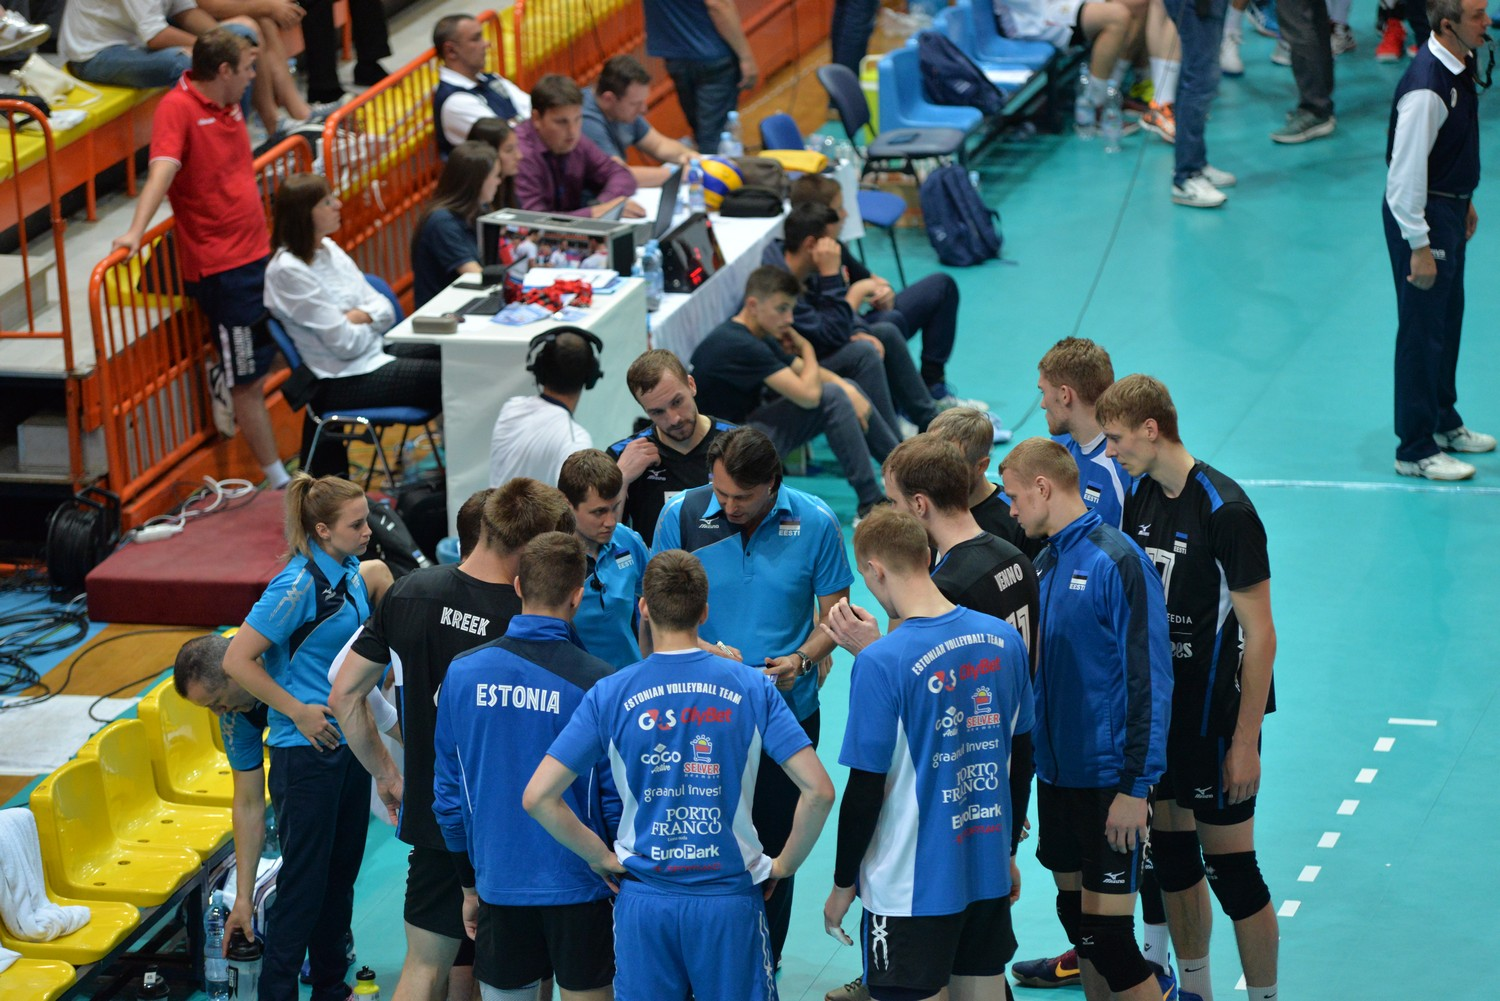 Täht scores 18 points for Estonia in a three-set win against